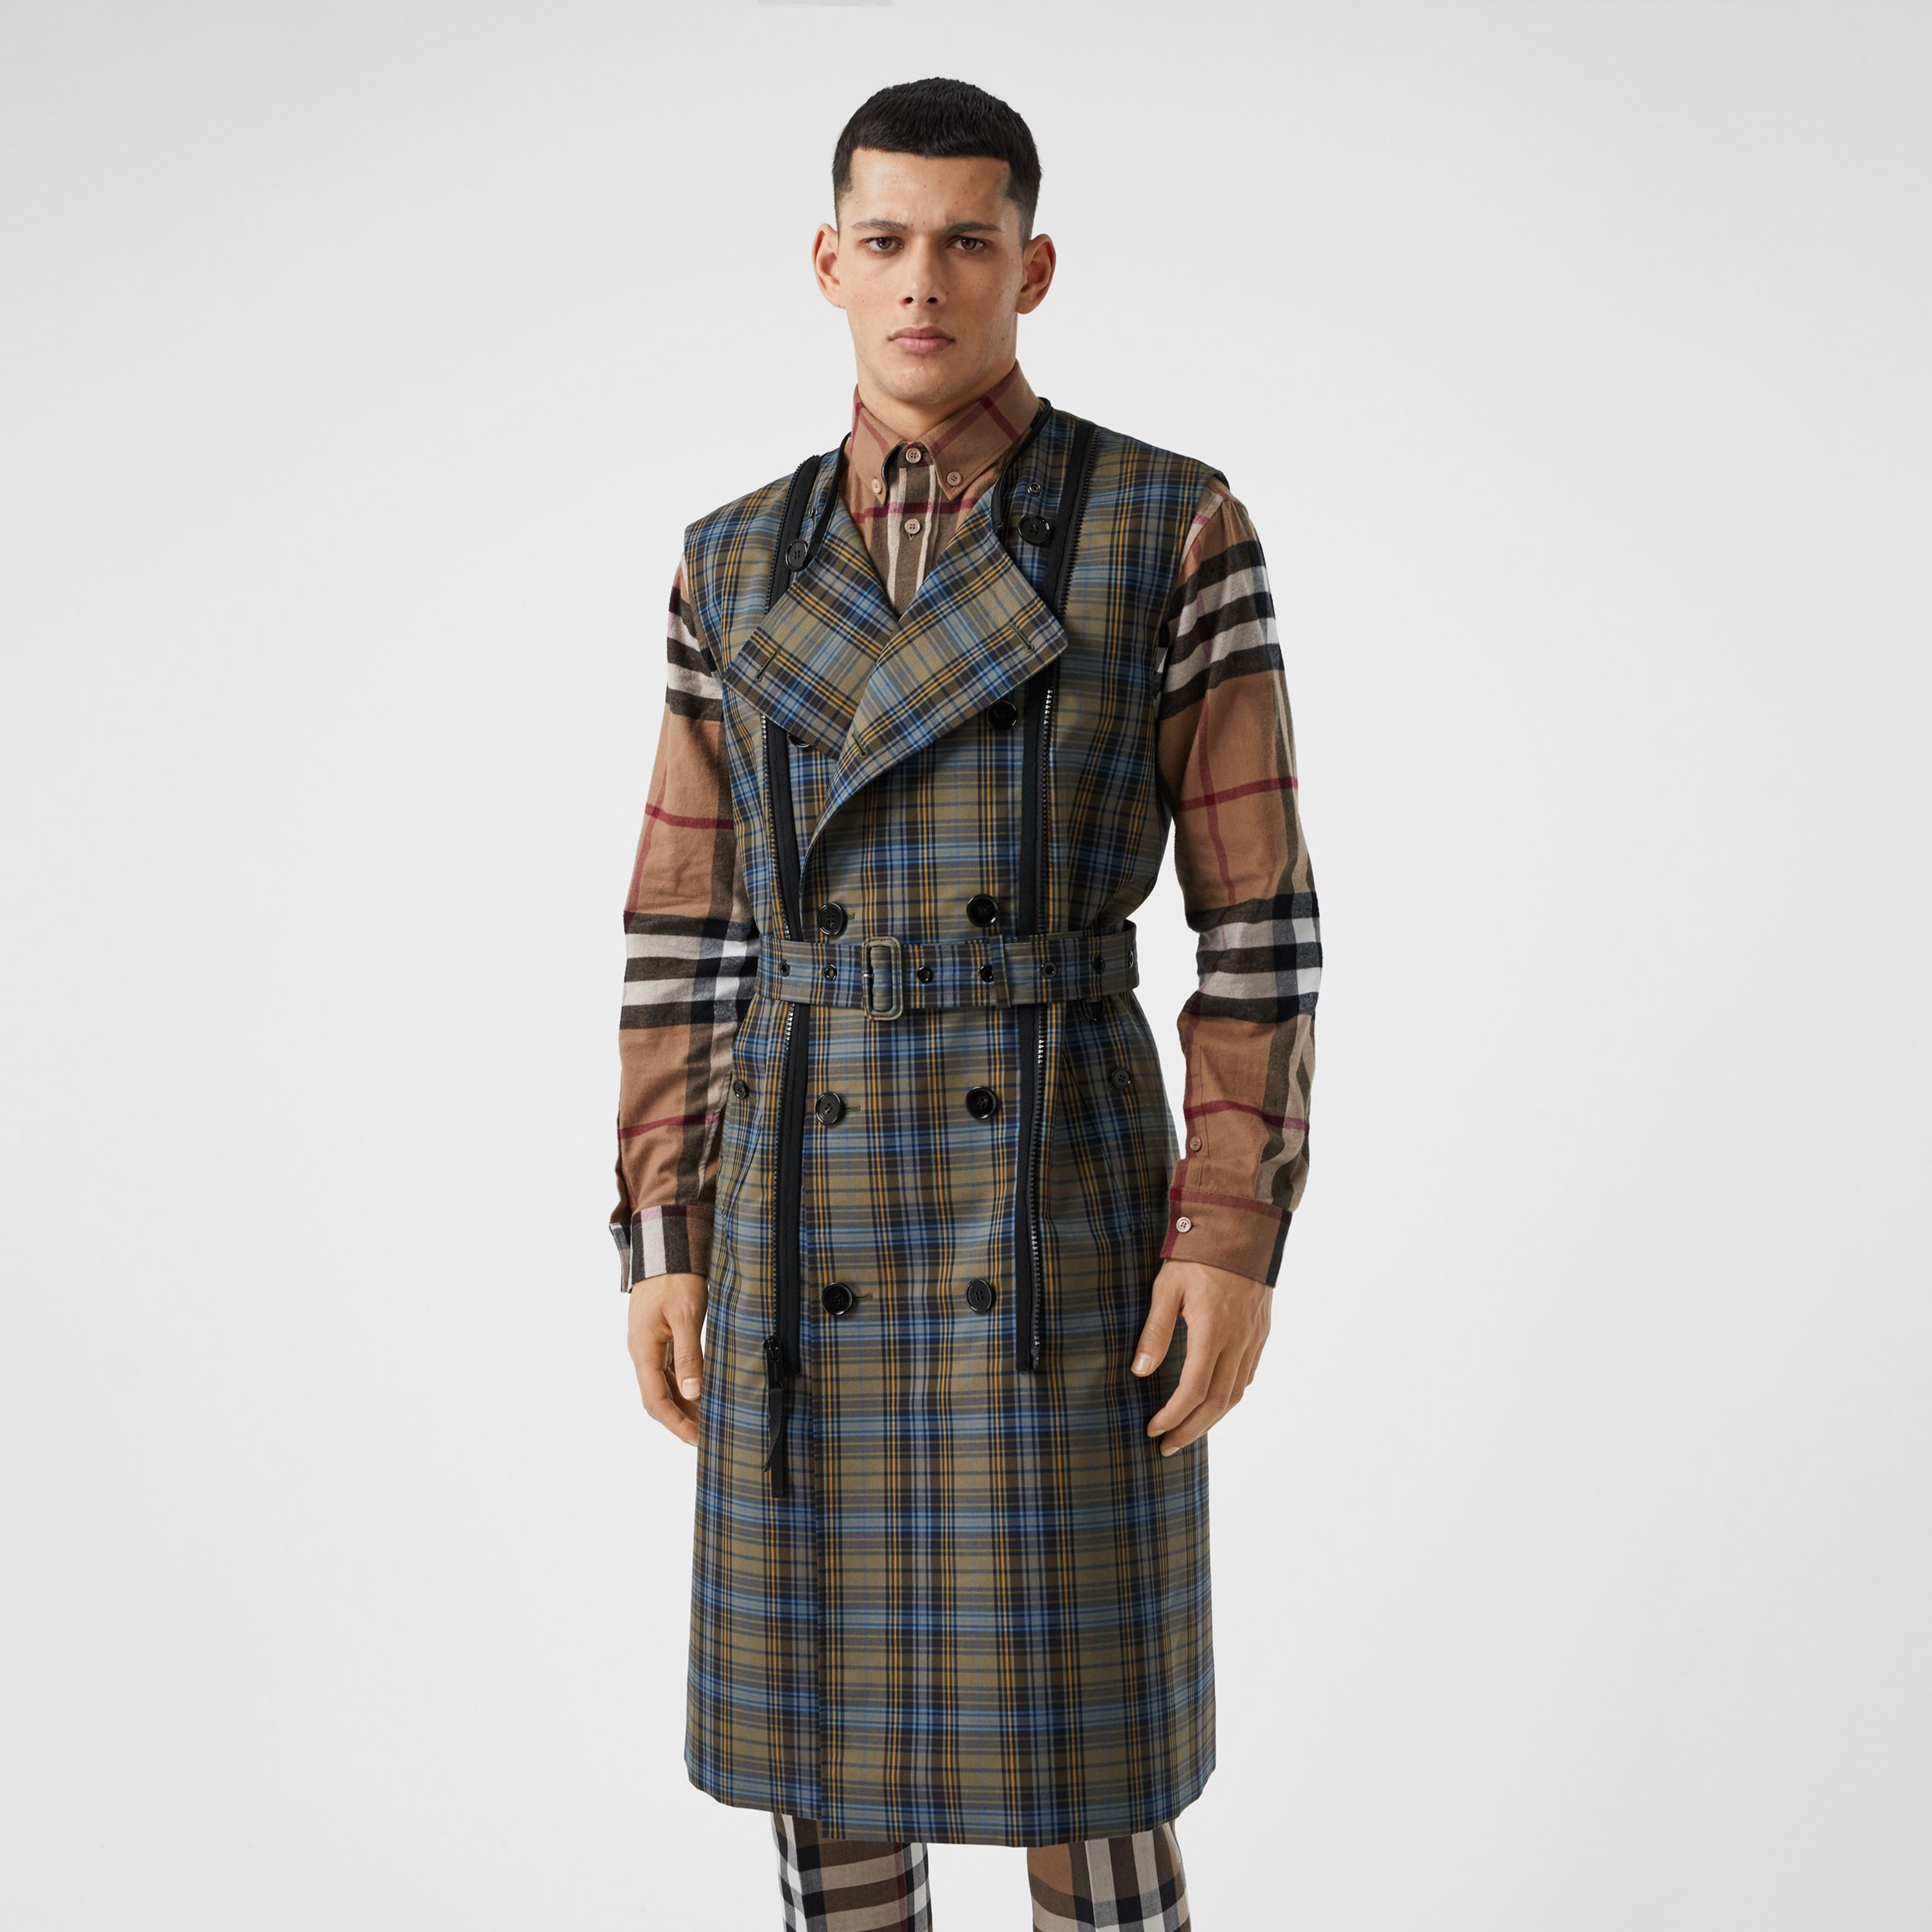 Sleeveless Check Trench Coat With Detachable Puffer in Multicolour | Burberry - 3